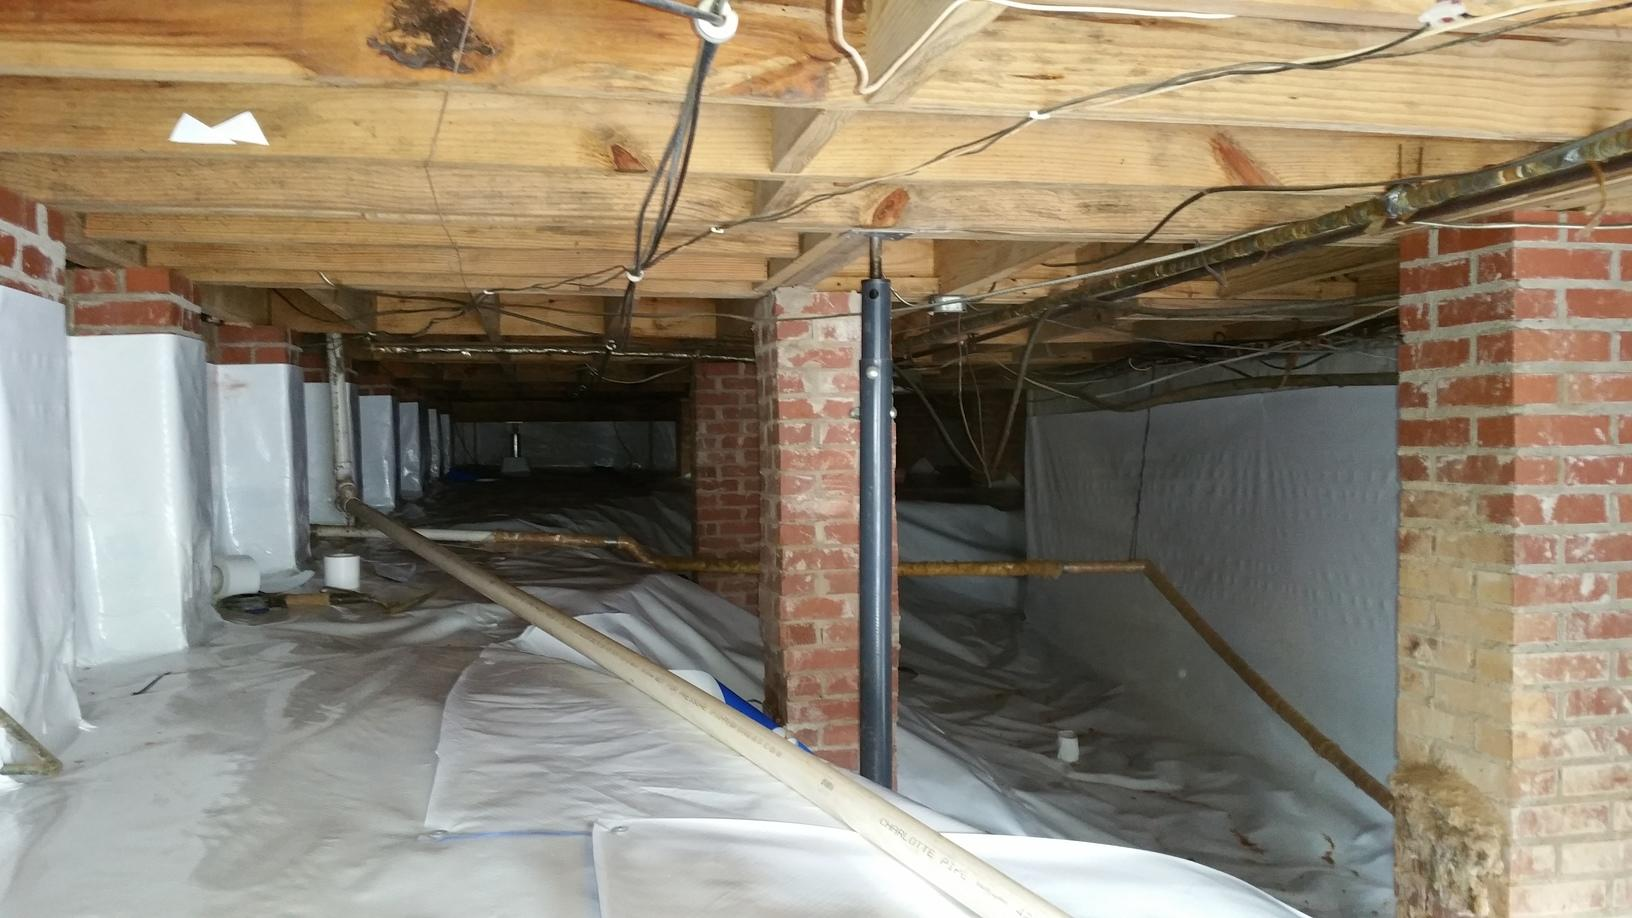 Encapsulation in Boiling Springs, SC Crawl Space - After Photo